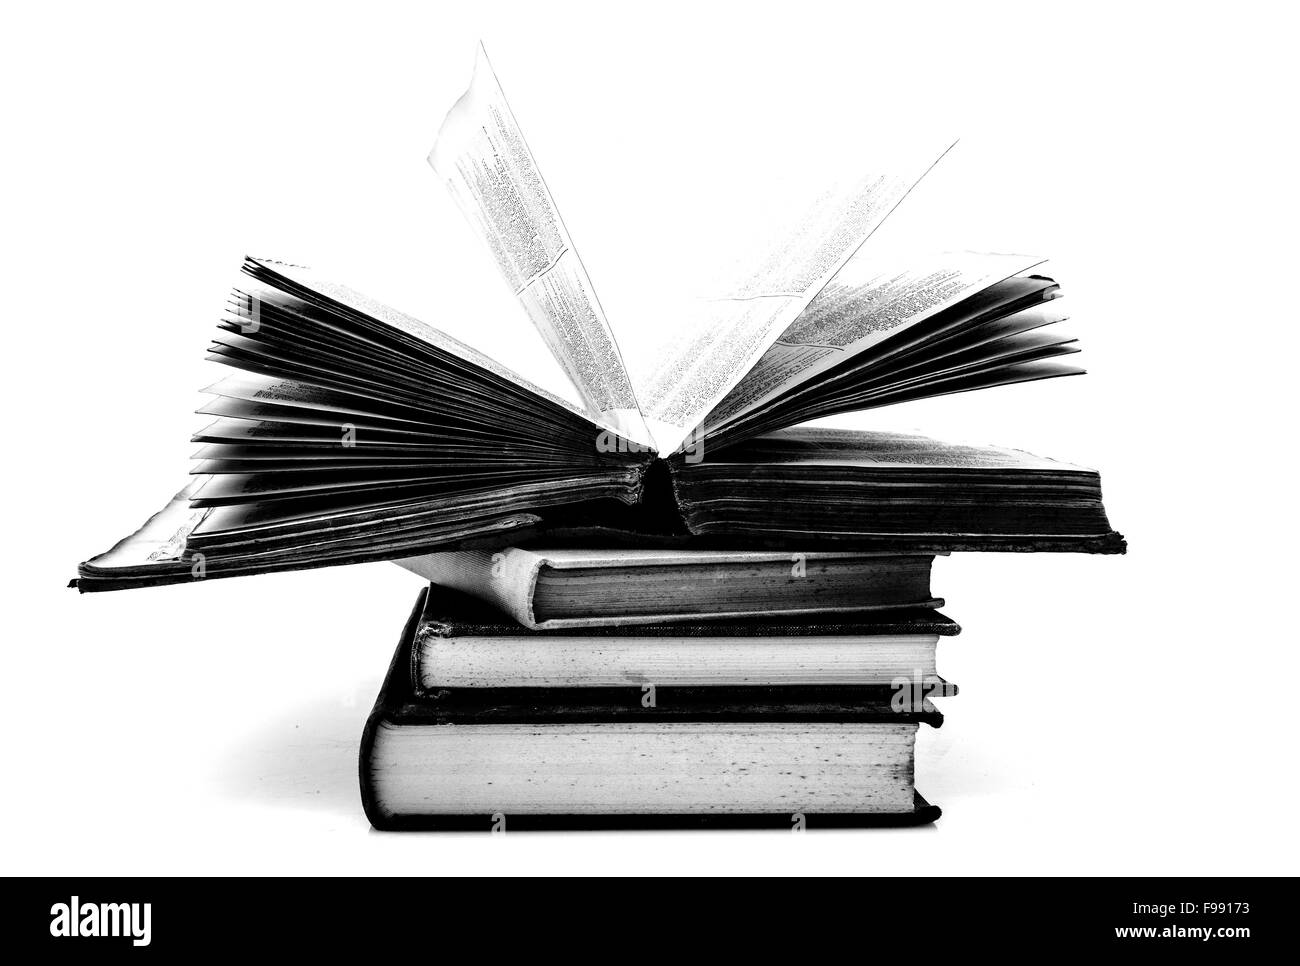 Pile of old books on a white background - Stock Image